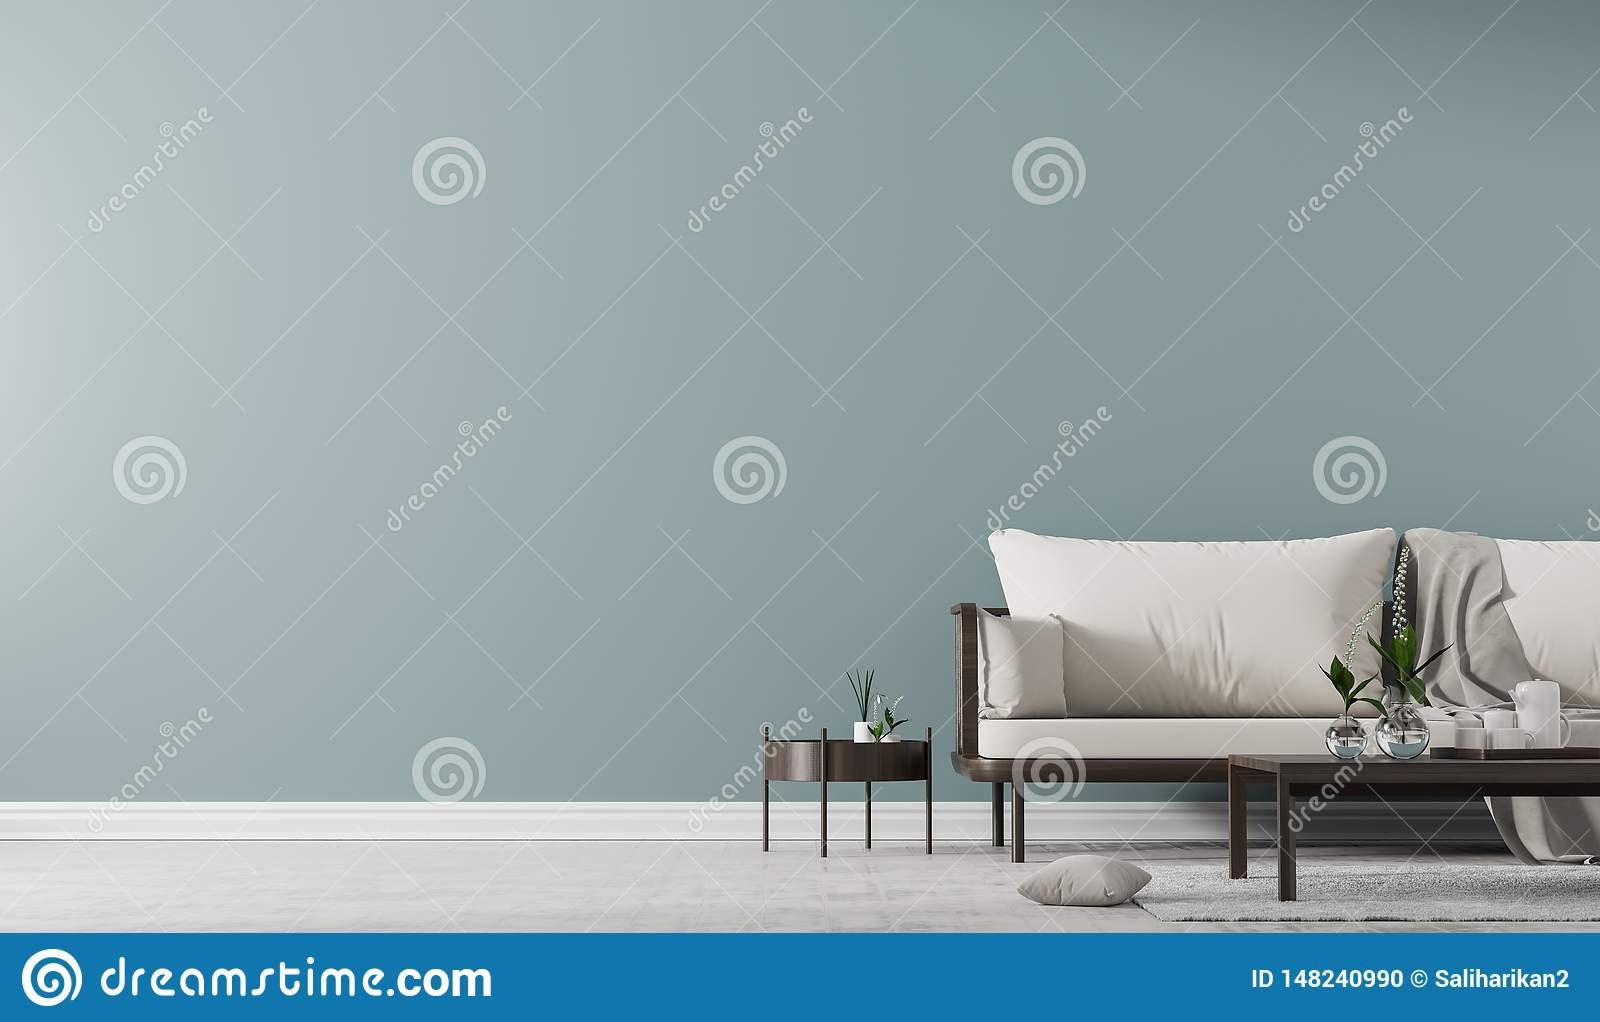 Surprising Interior Wall Mock Up With Scandinavian Style Sofa With Gmtry Best Dining Table And Chair Ideas Images Gmtryco